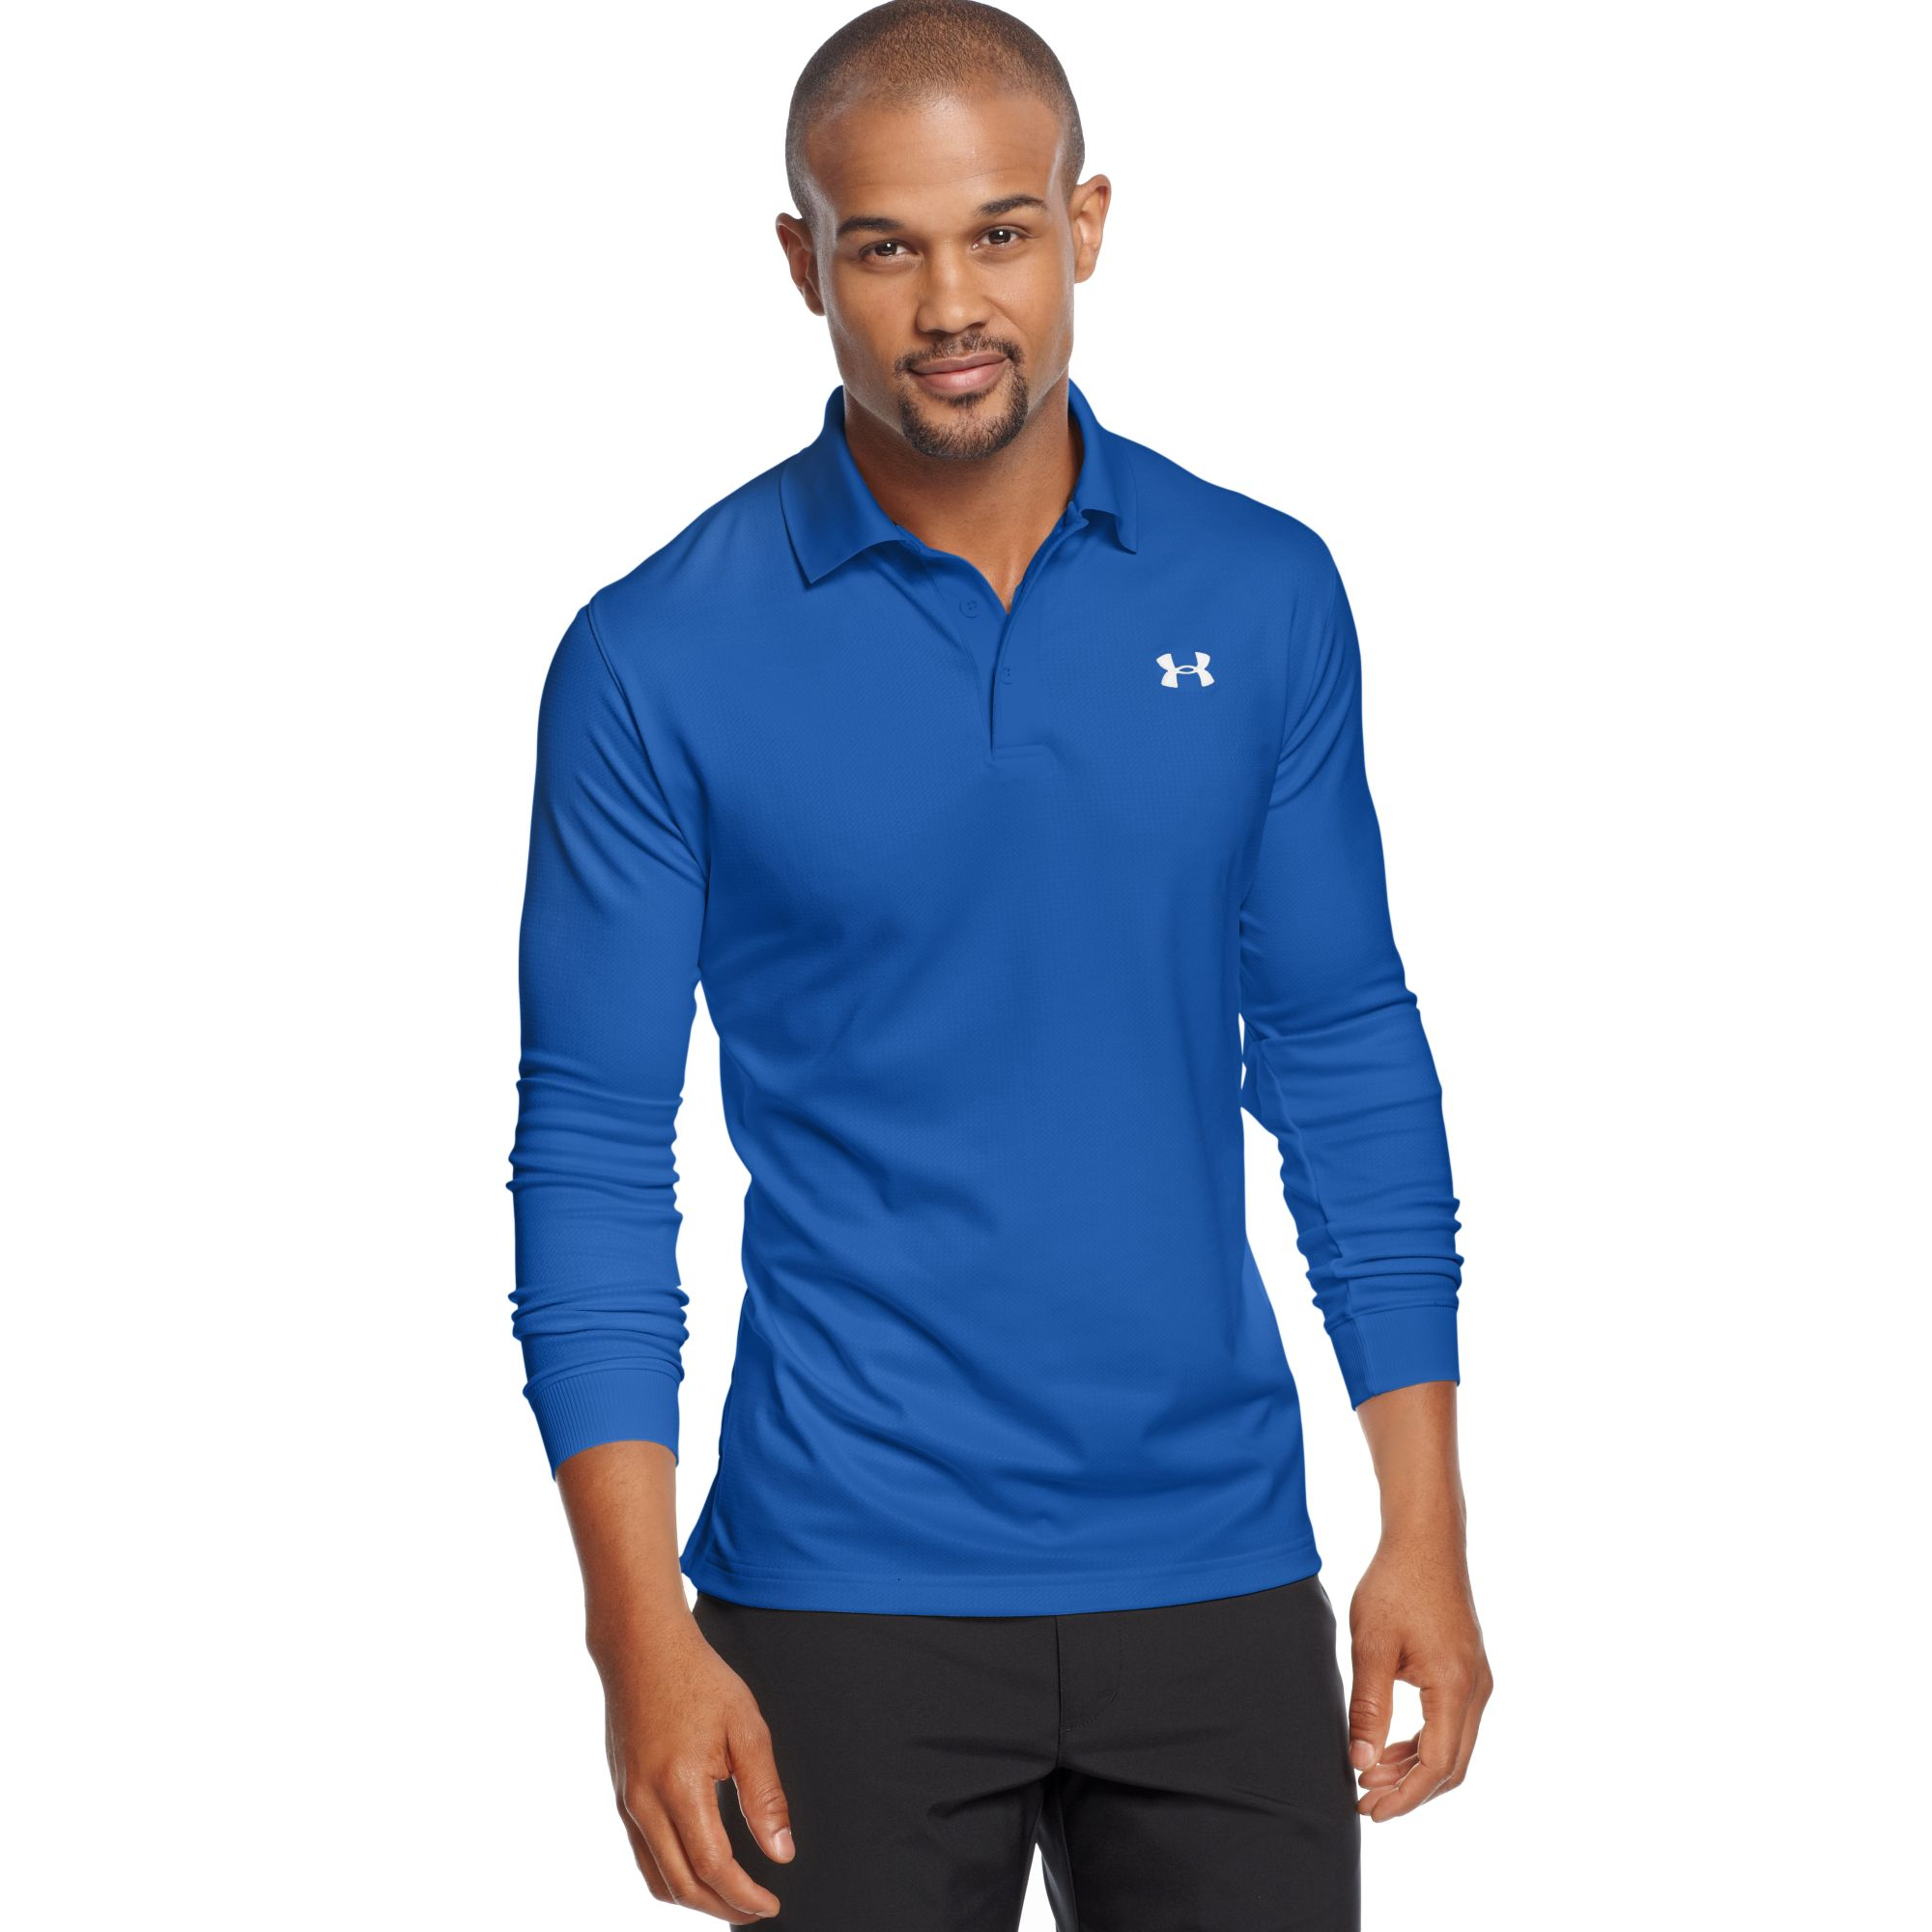 Lyst Under Armour Longsleeve Performance Polo Shirt In Blue For Men